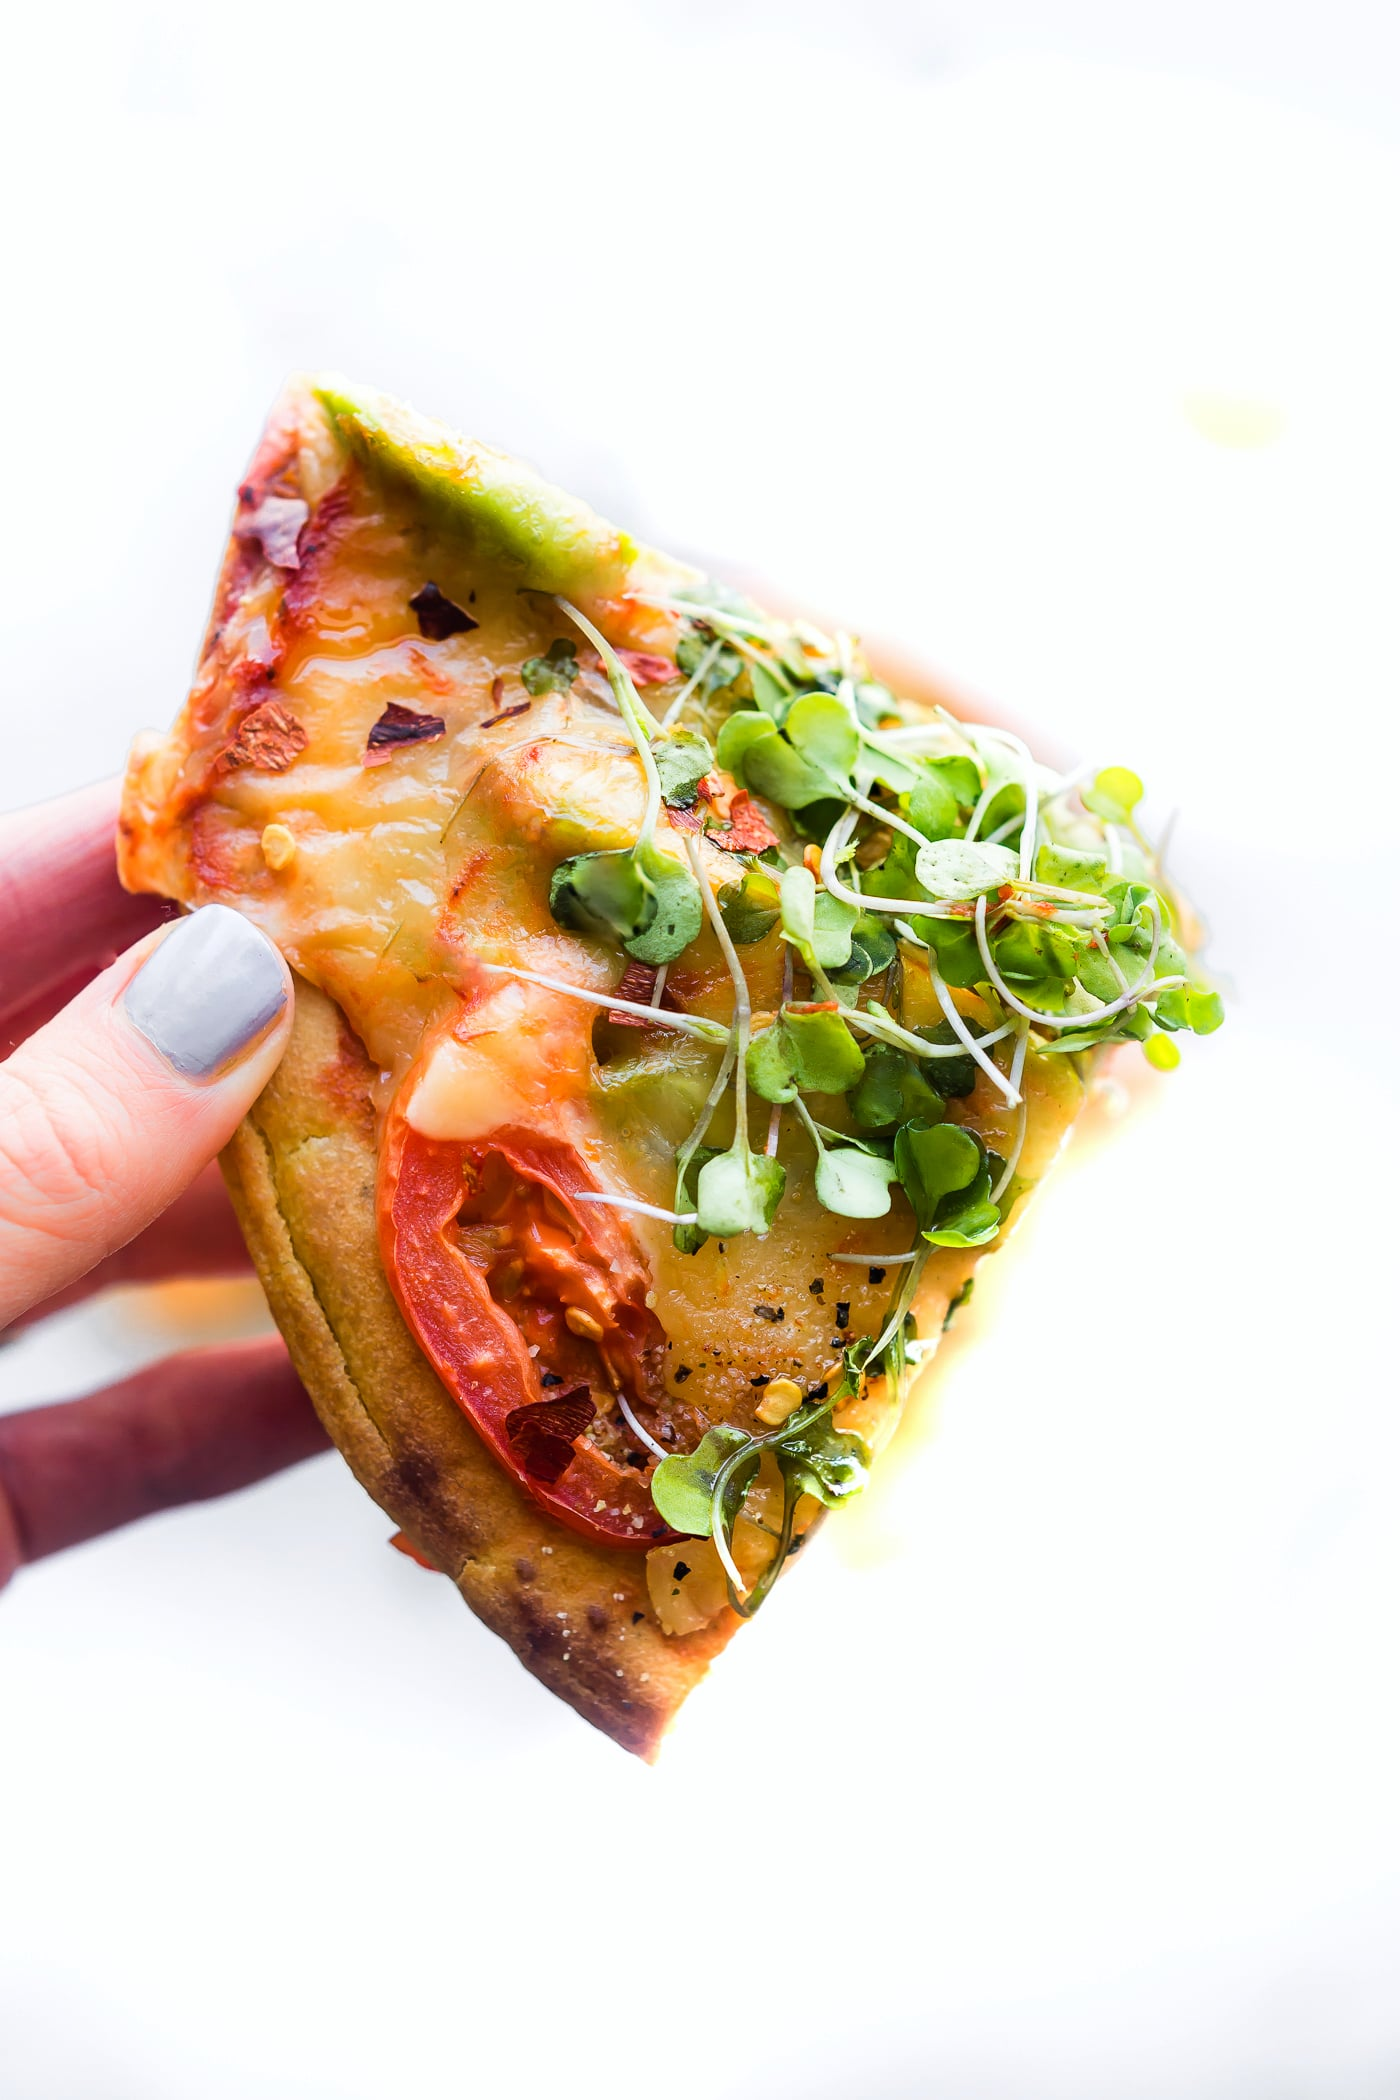 Avocado Tomato Gouda Socca Pizza recipe to love! A grain free, gluten free Avocado Tomato Gouda Socca Pizza made with chickpea flour and topped with Avocado, Gouda, Tomato, and Sprouted Greens! Seriously easy to make, egg free, vegan option, OMG delicious!